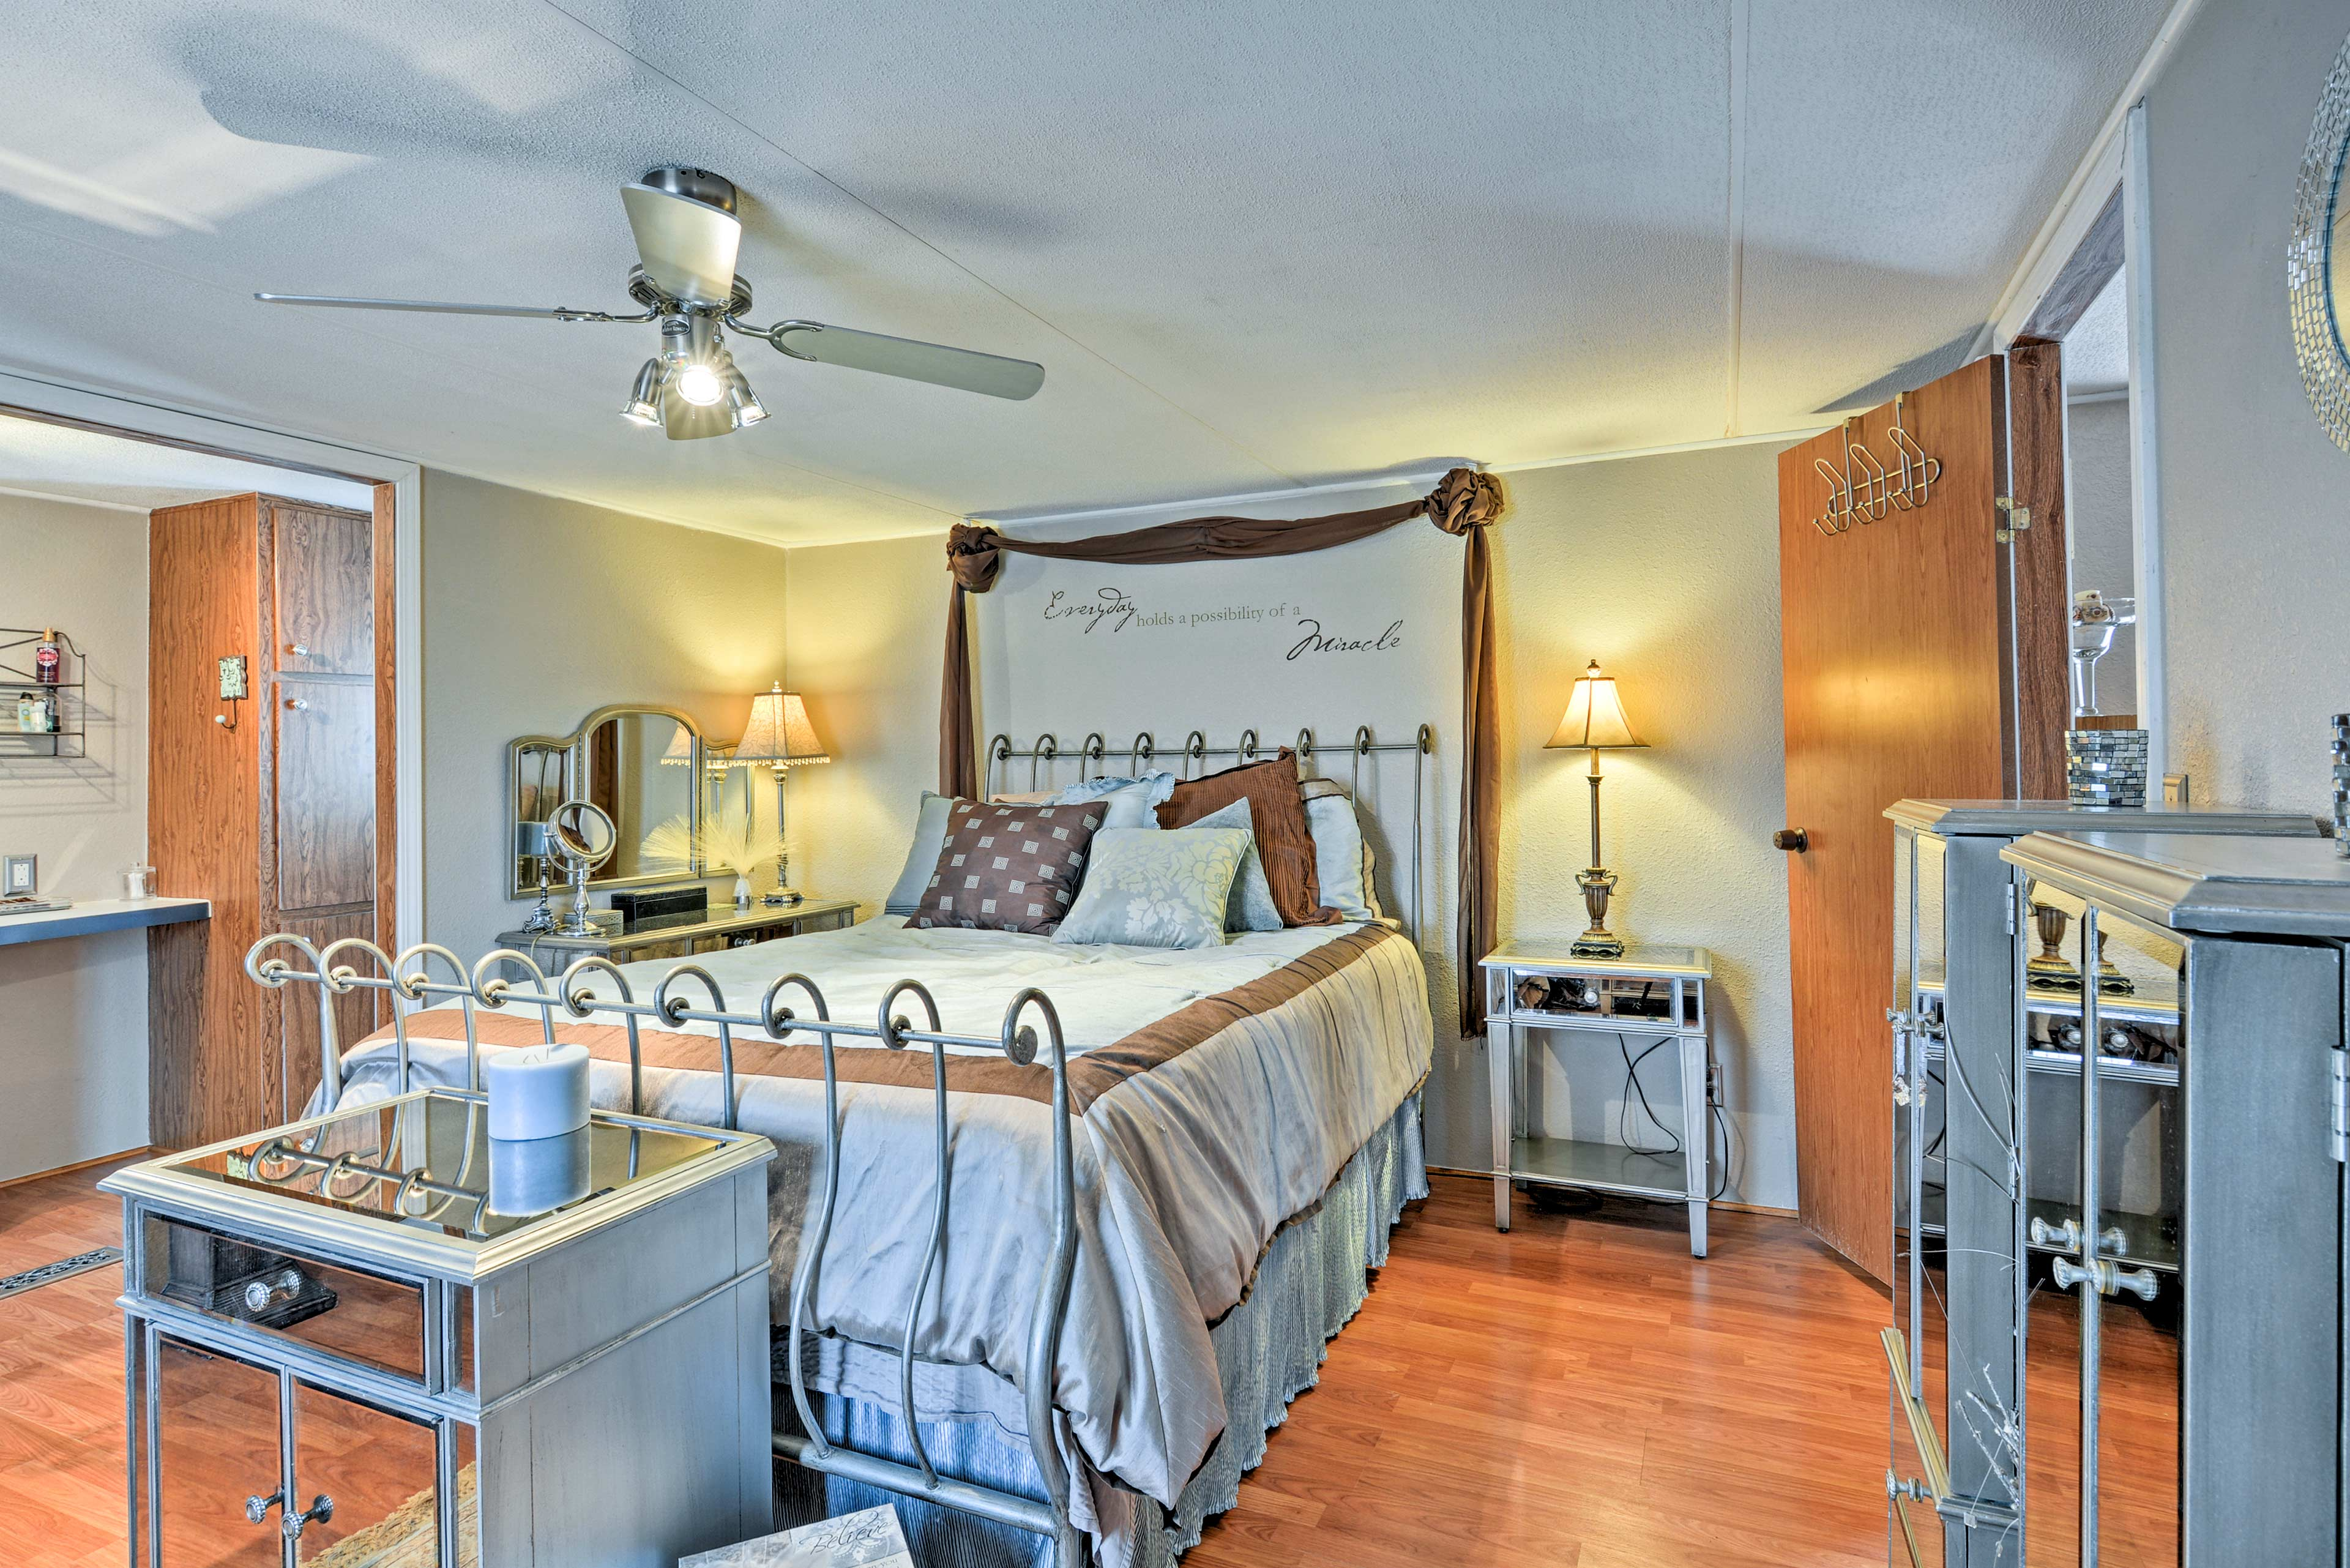 When bedtime calls, retreat to one of the 3 bedrooms sleeping up to 6 guests.